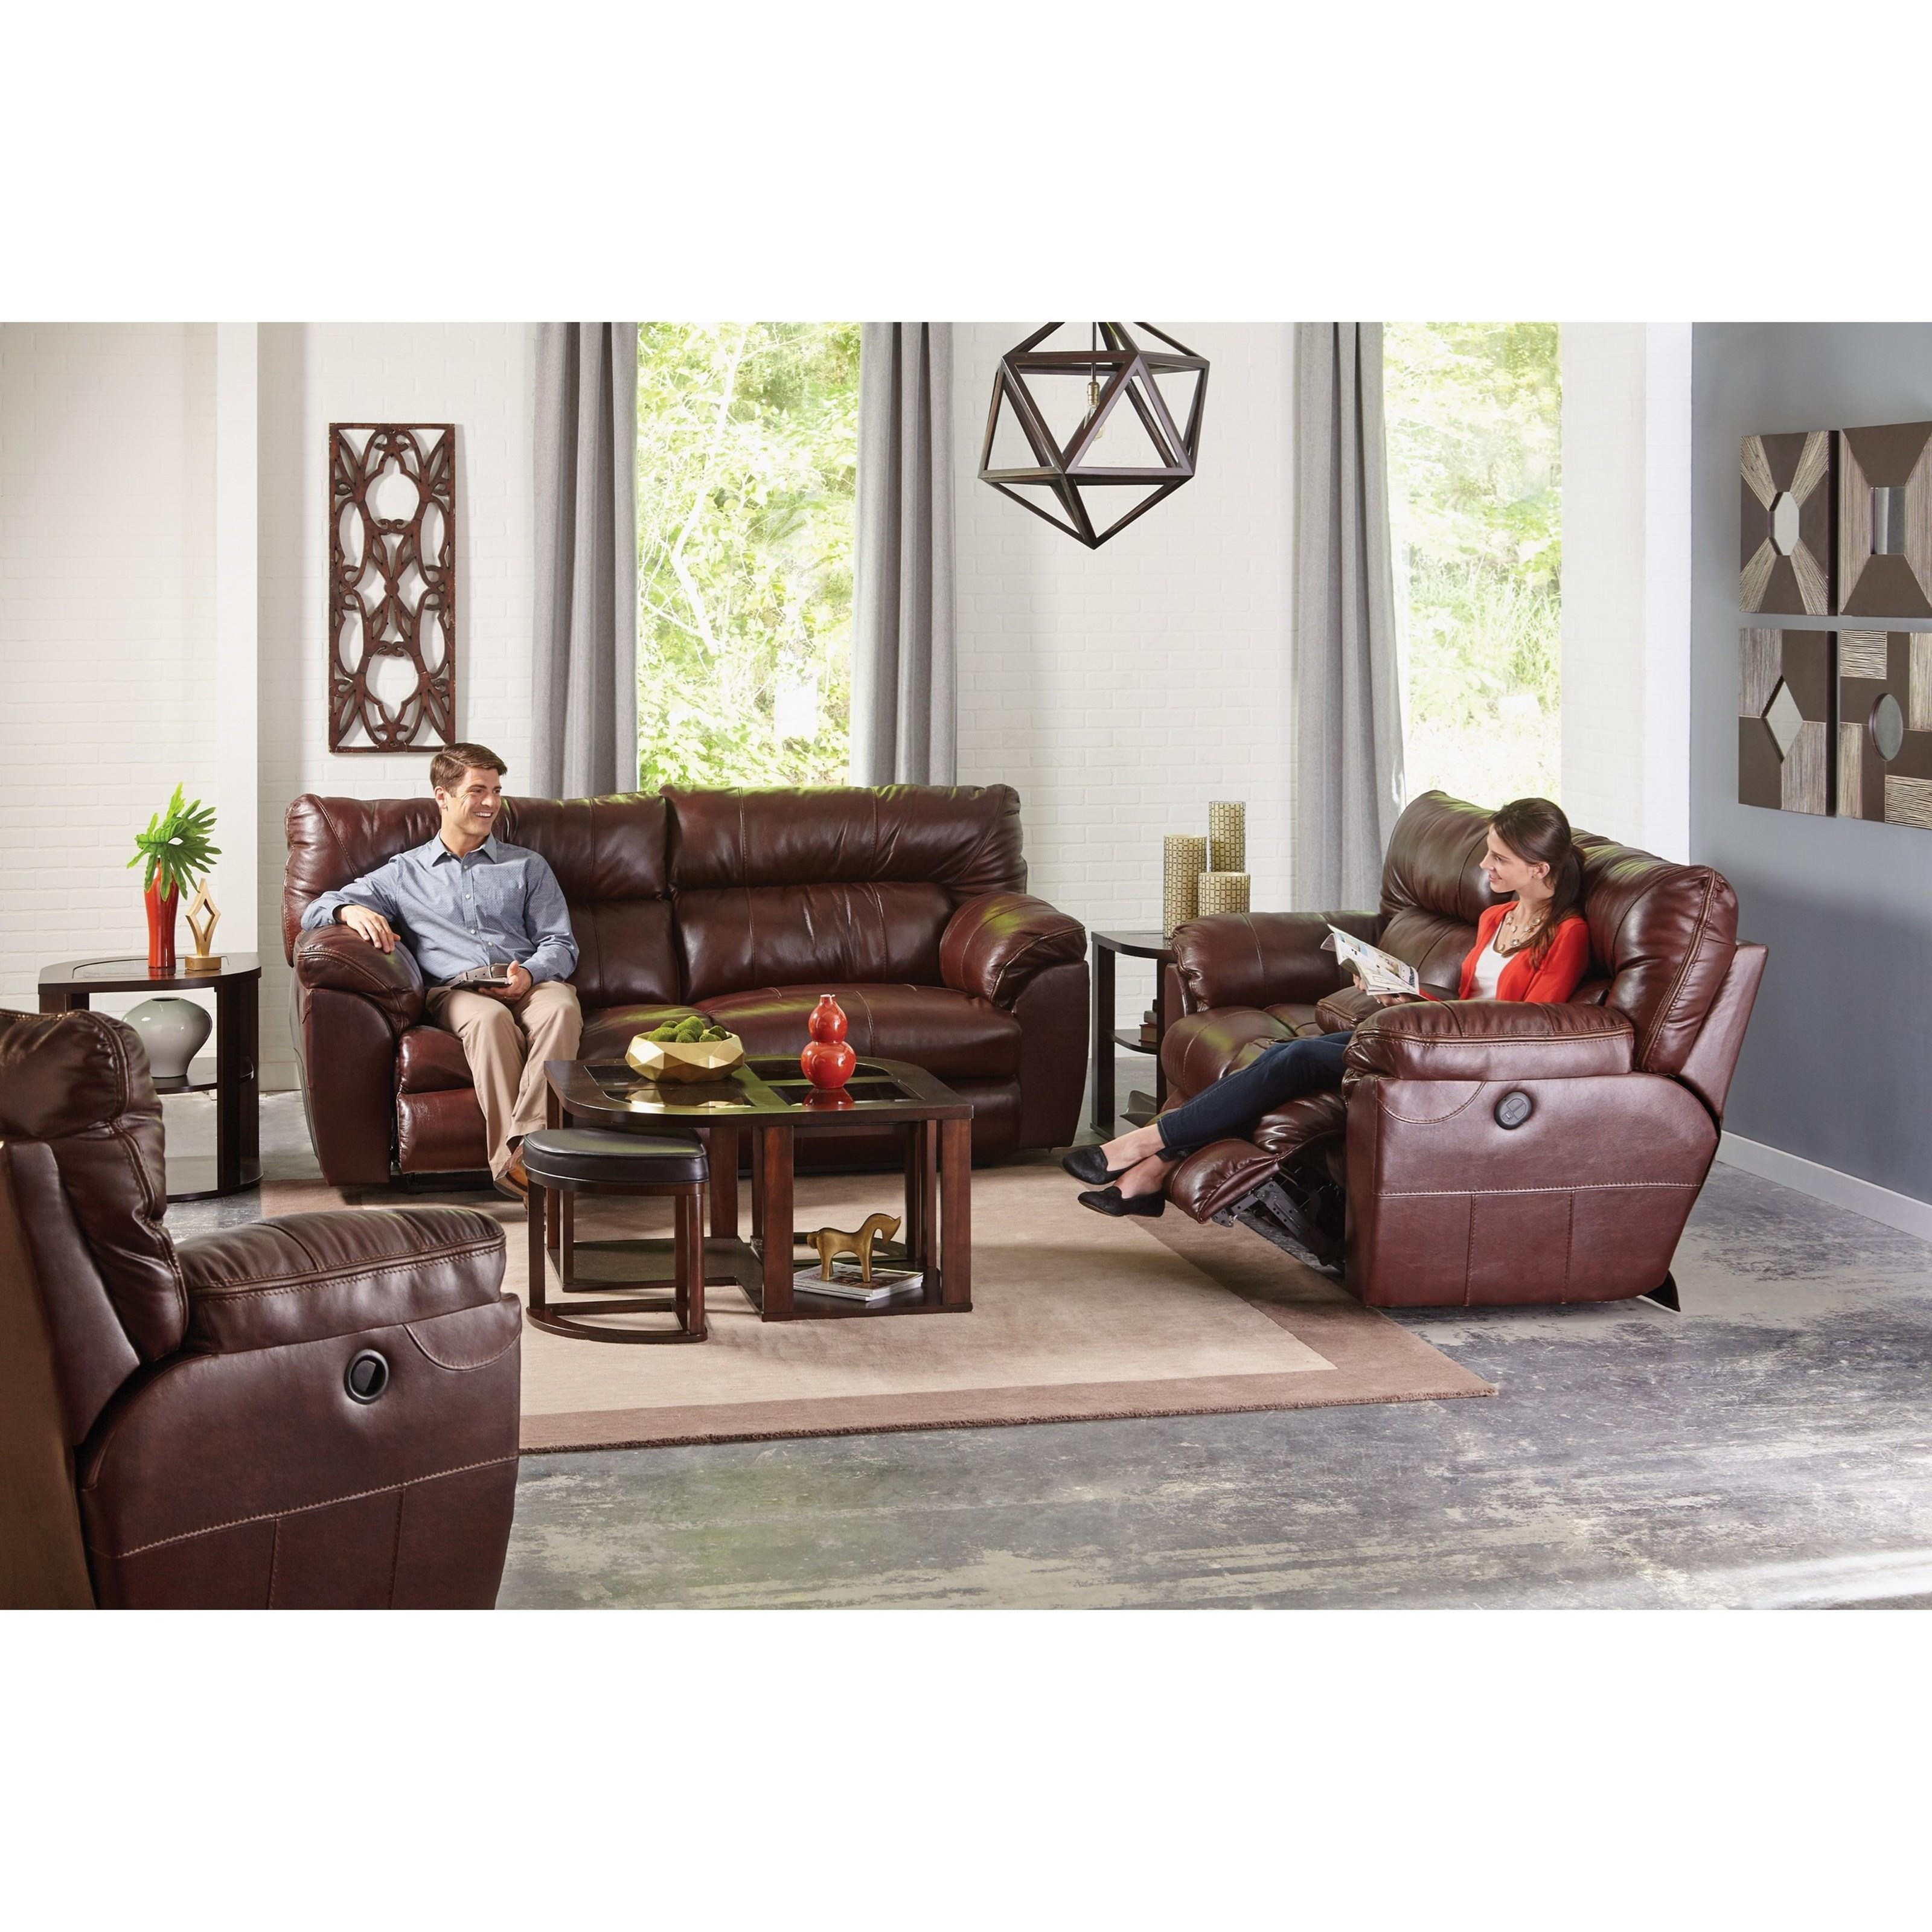 Catnapper Milan Casual Leather Lay Flat Reclining Sofa